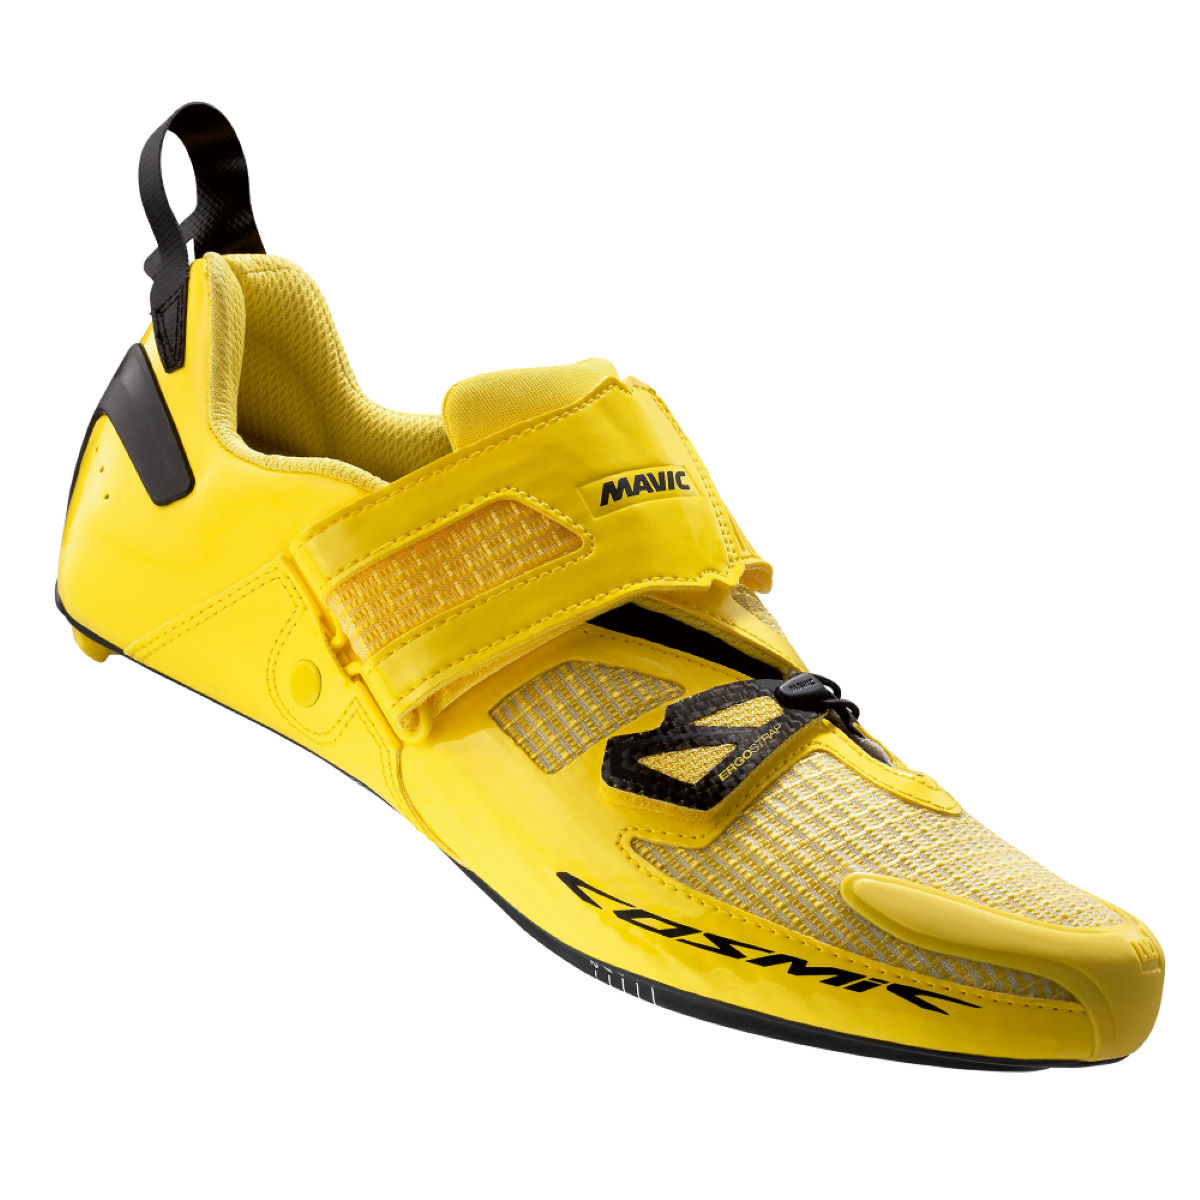 Chaussures de triathlon Mavic Cosmic Ultimate - 6 Jaune Chaussures de triathlon